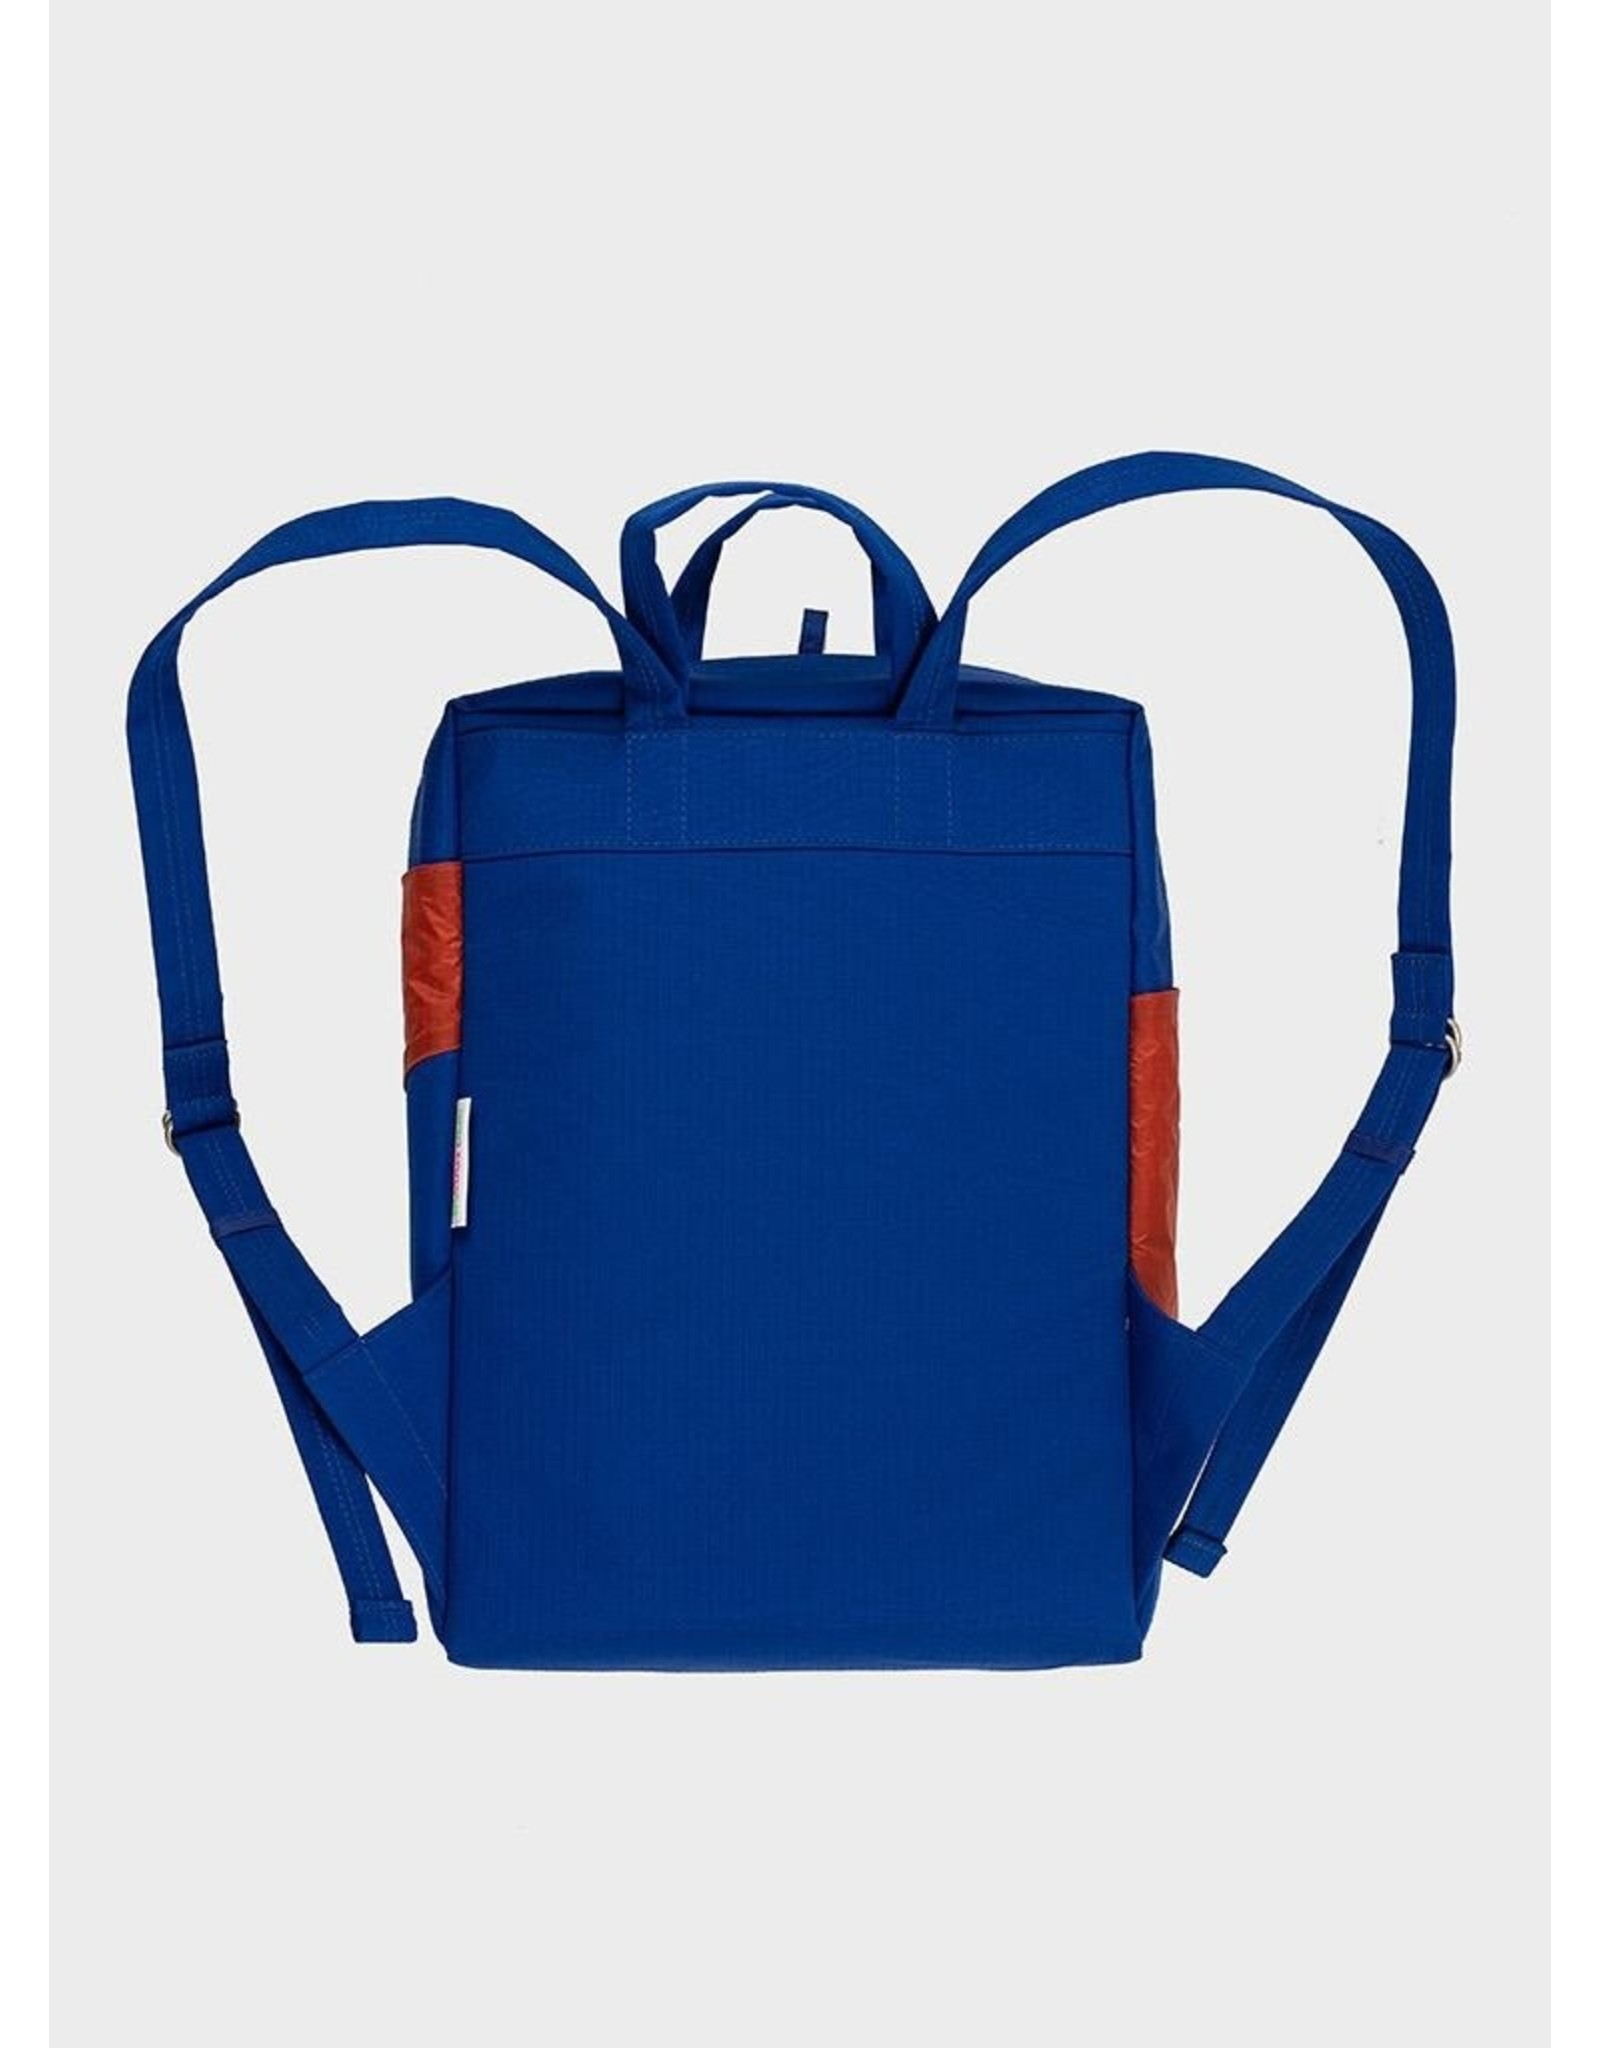 Susan Bijl Back Pack, Electric Blue & Rust | One size